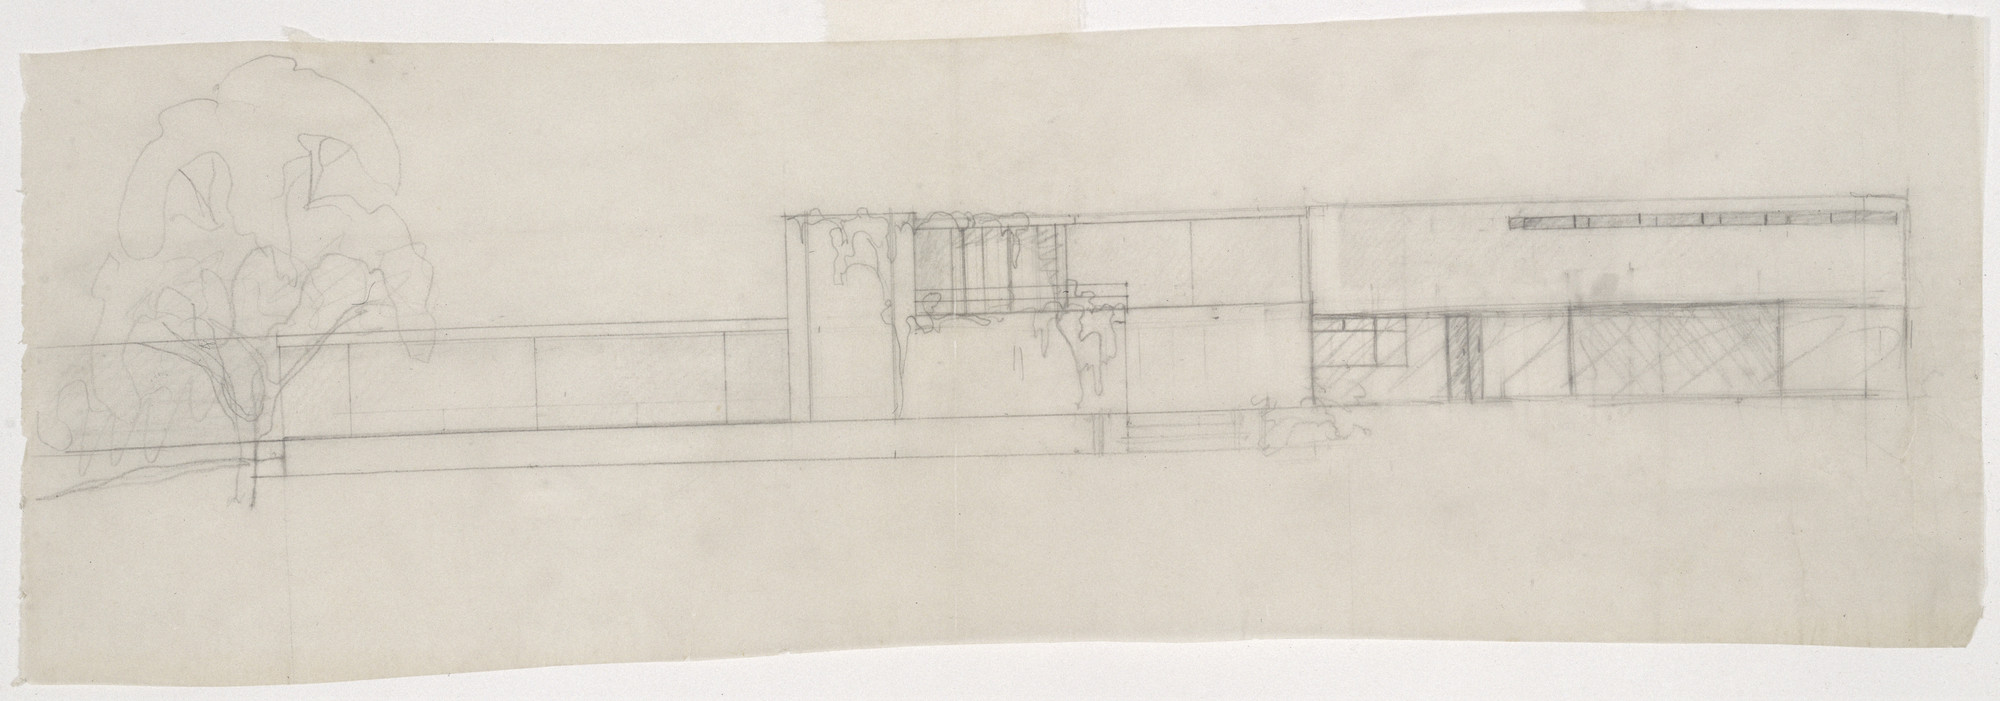 Ludwig Mies van der Rohe. Gericke House Project, Berlin-Wannsee, Germany, Elevation study facing the Wannsee. 1932